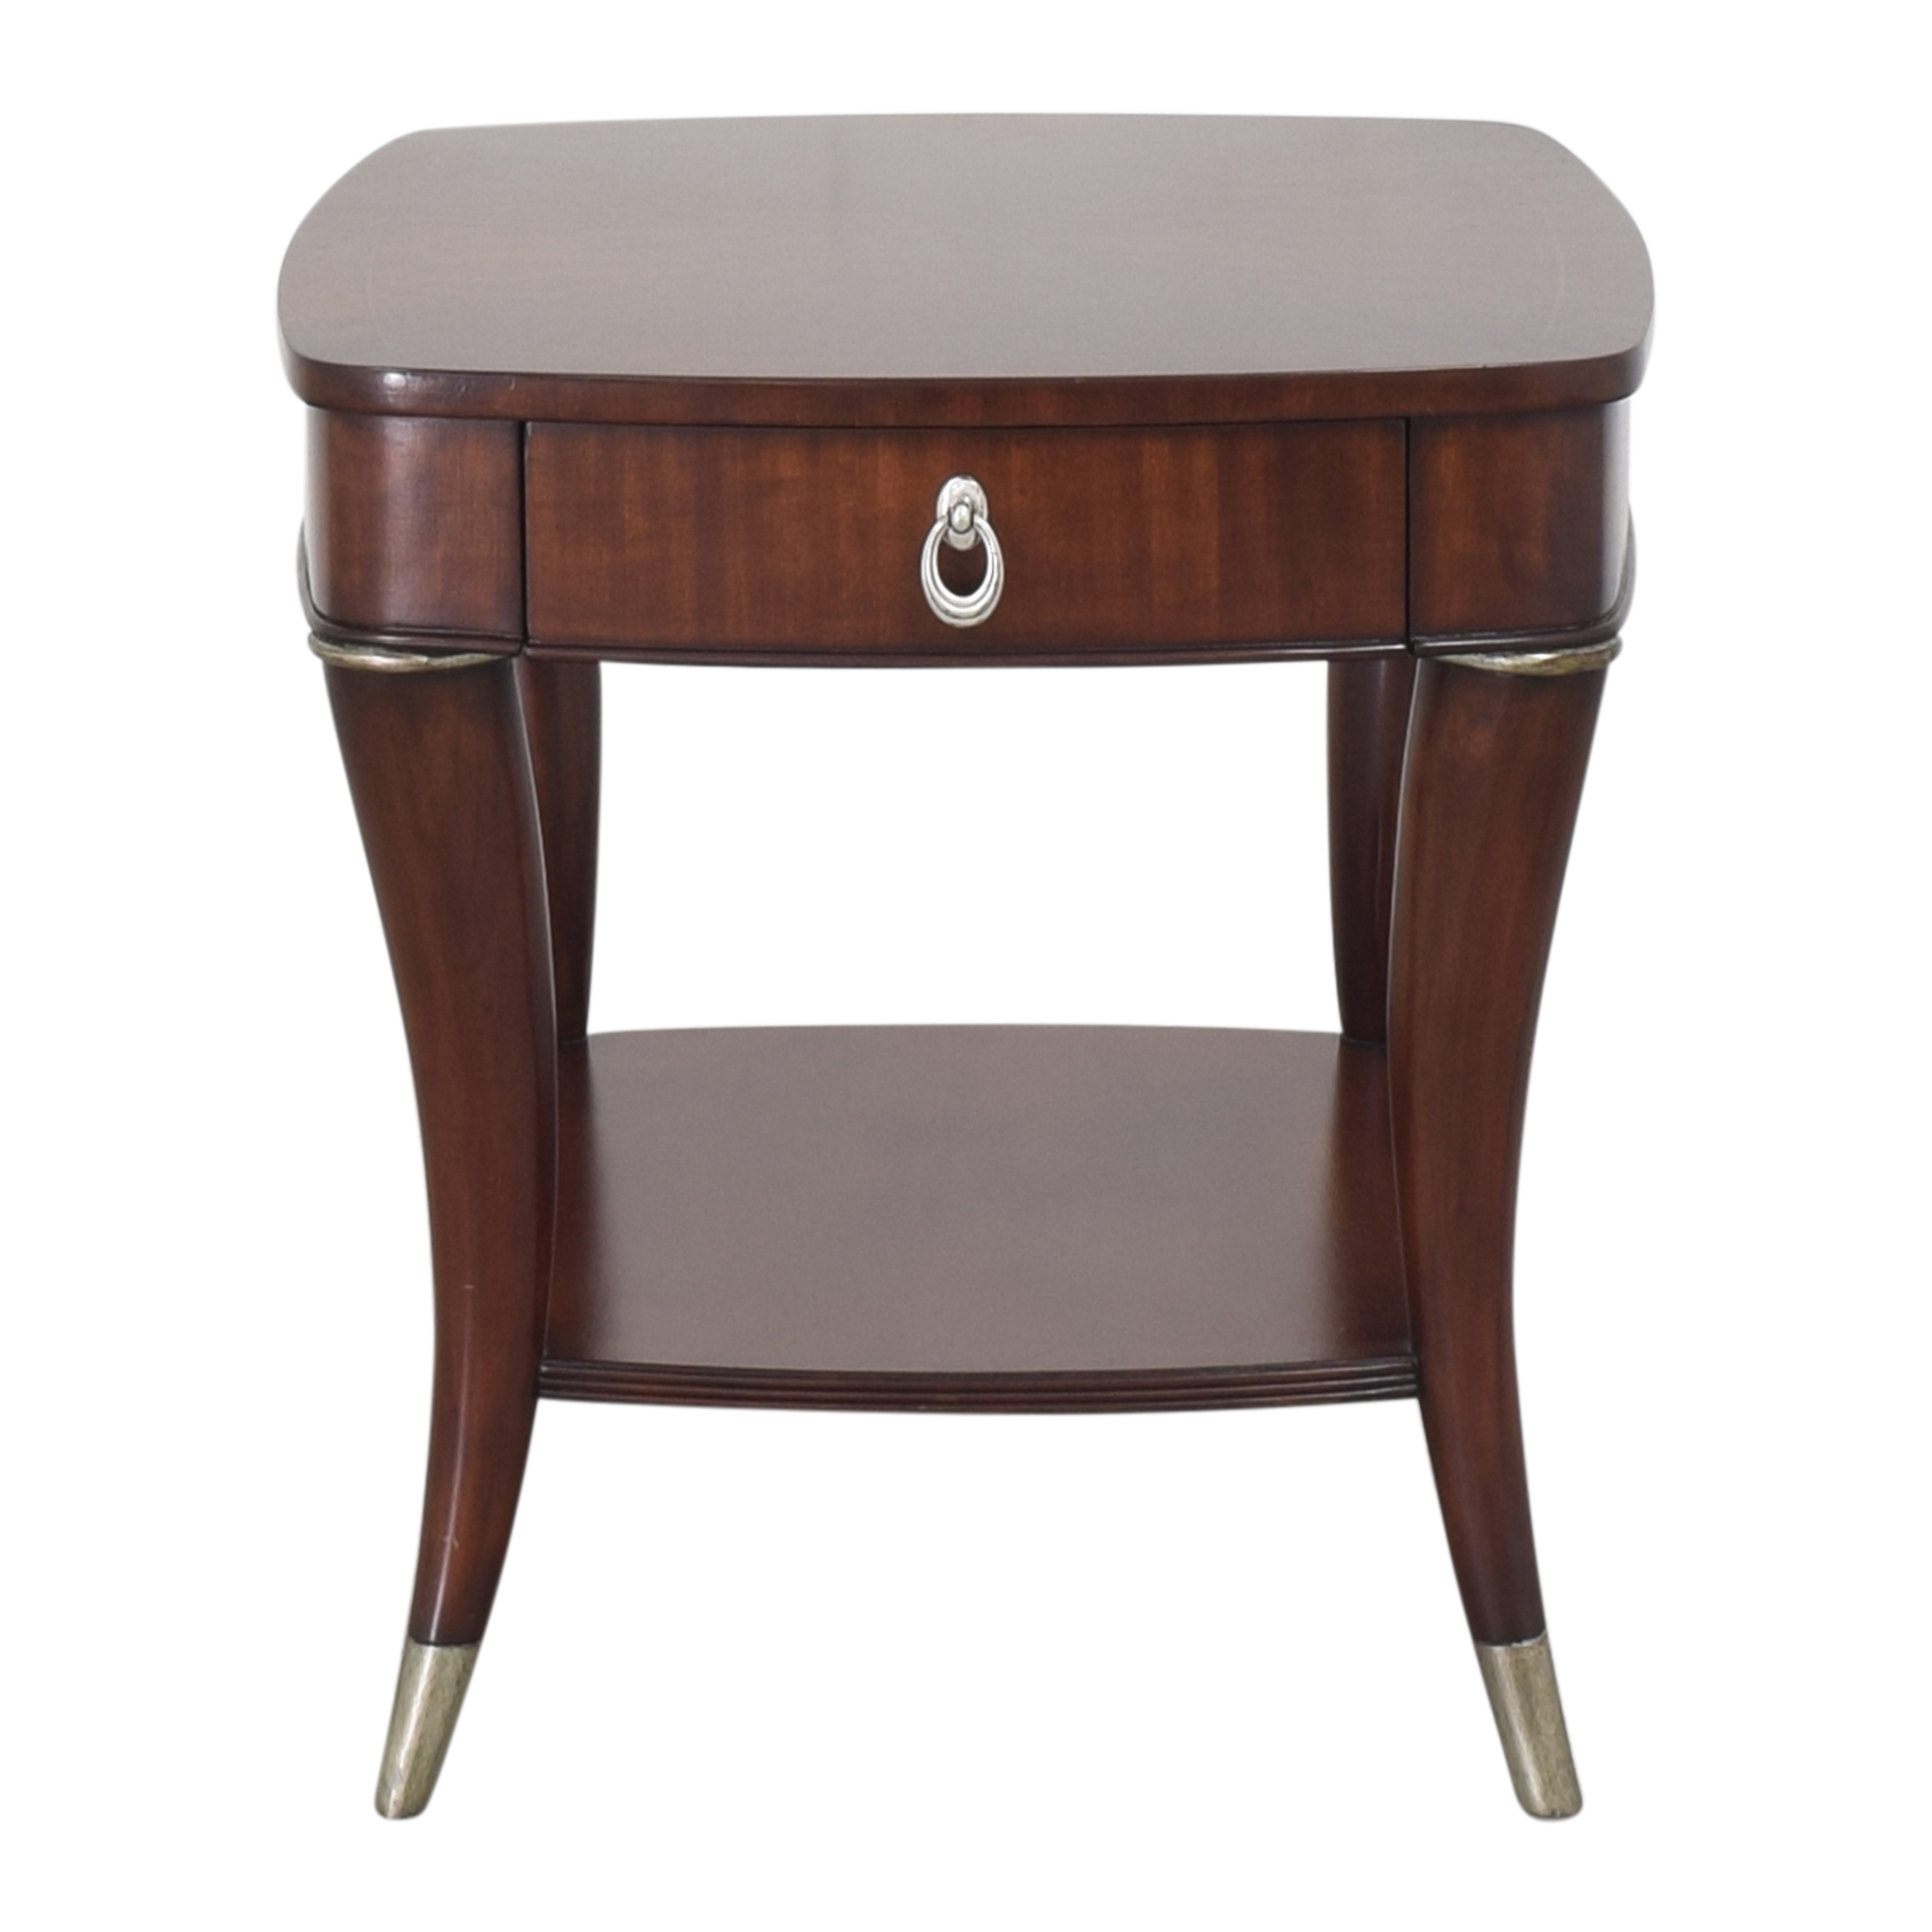 Thomasville Thomasville Bogart Collection End Table second hand